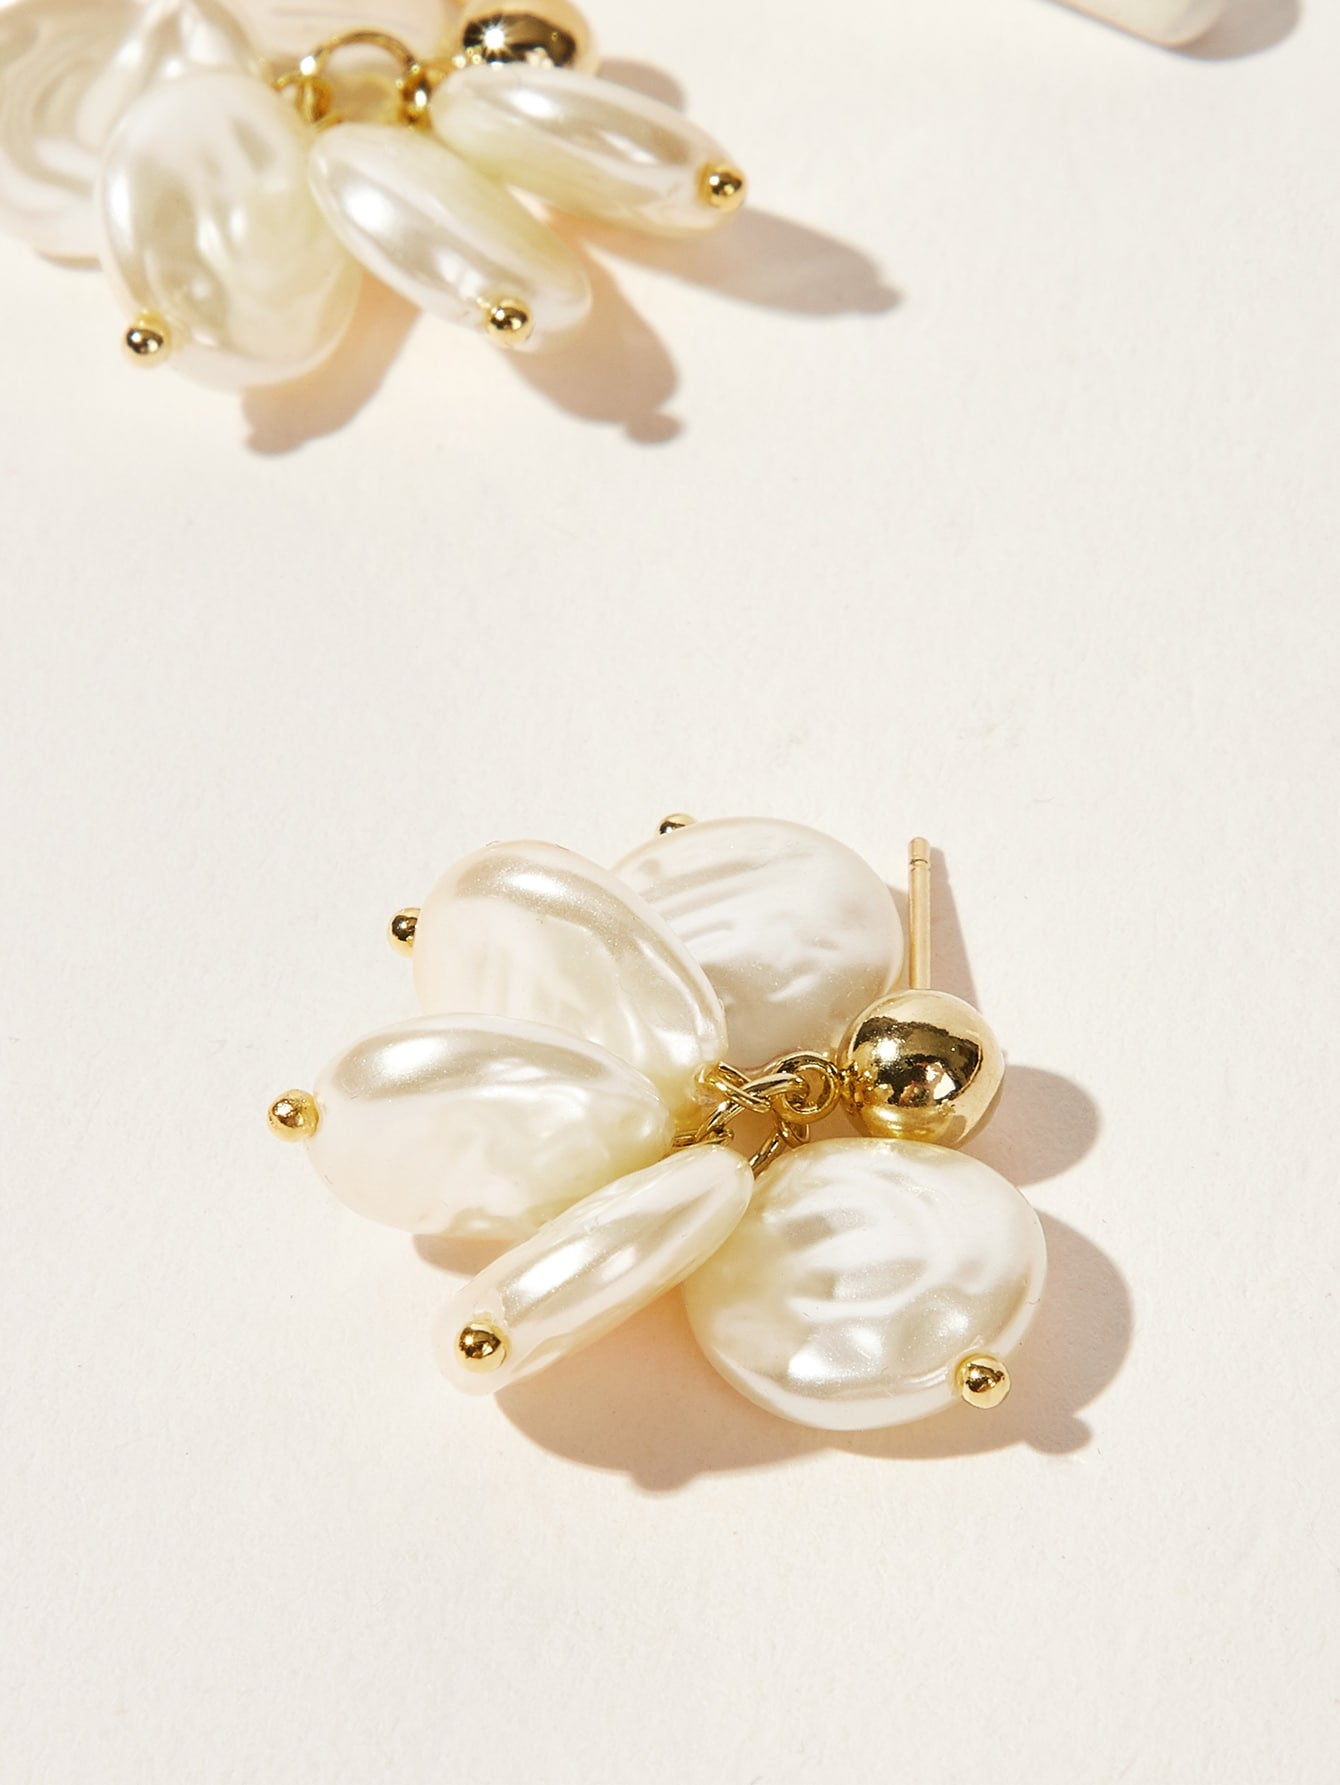 White Round Faux Pearl 1pair Drop Earrings